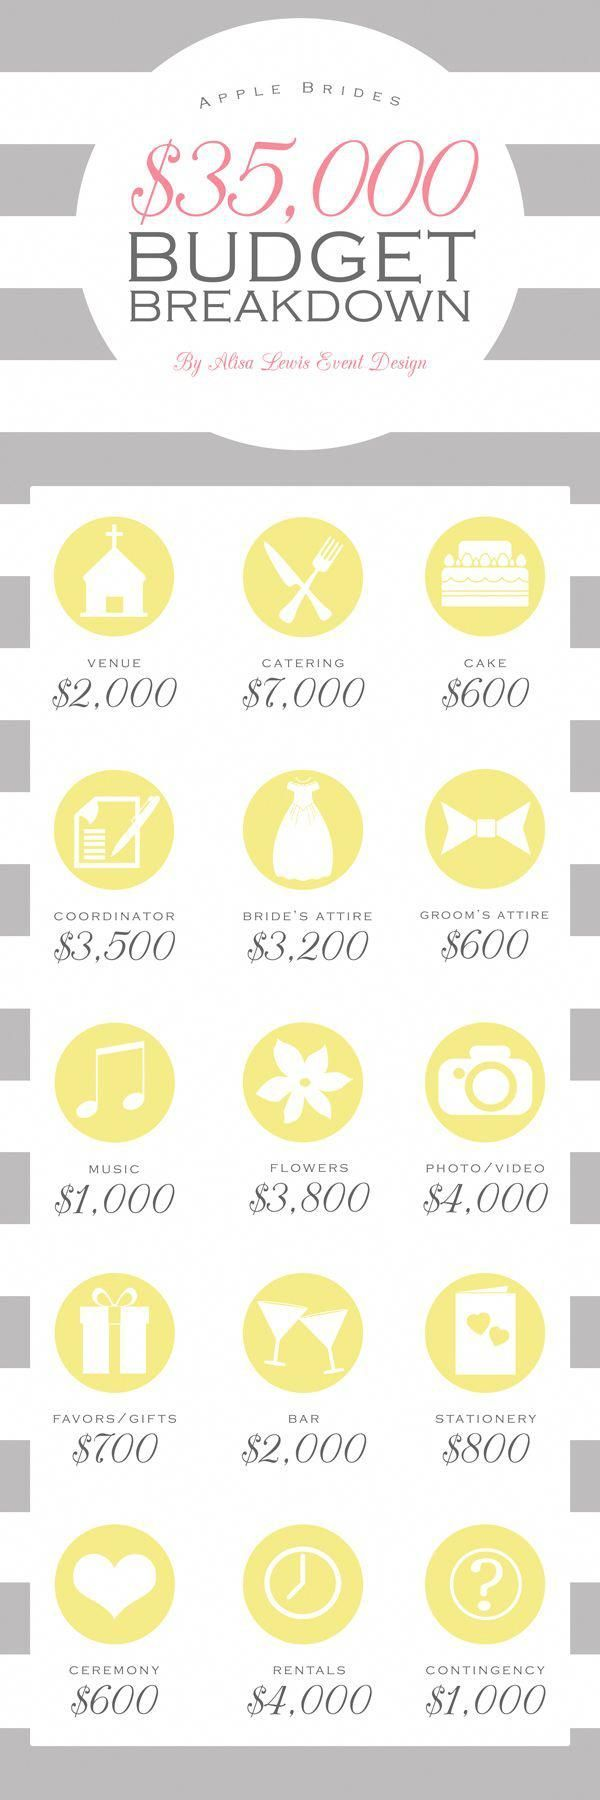 wedding budget breakdown wedding organization in 2018 pinterest